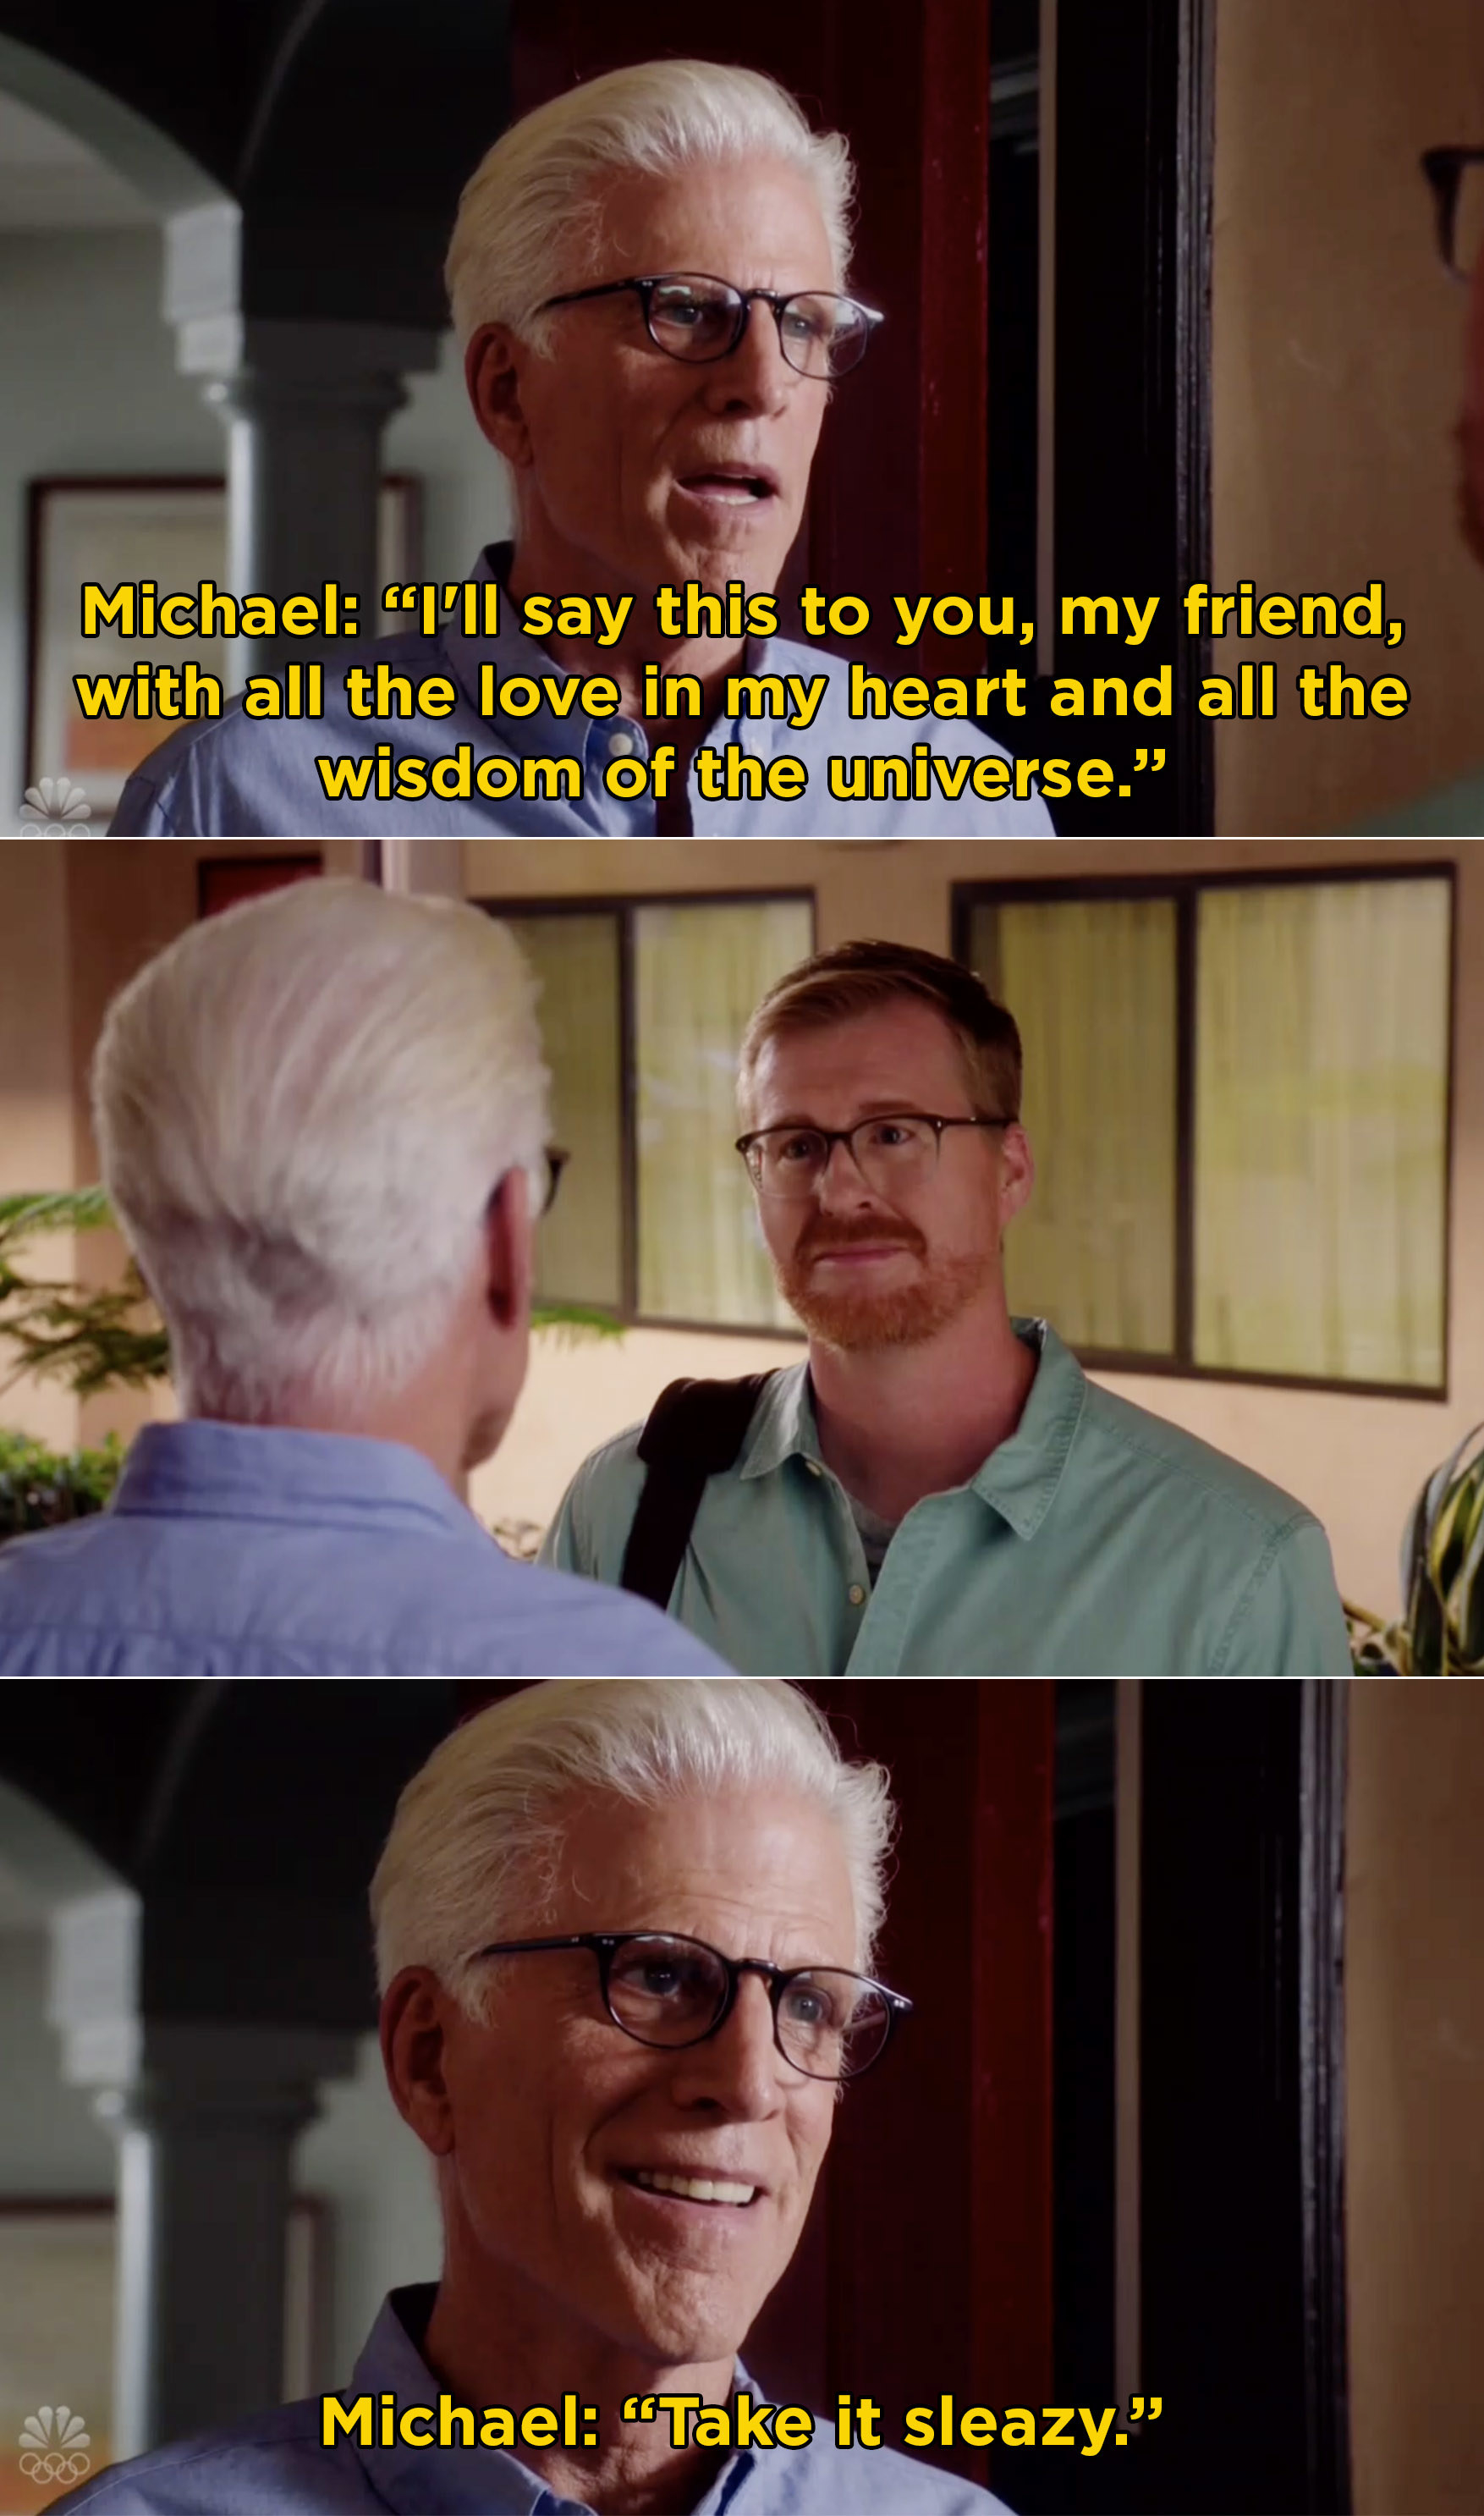 """Michael telling a deliver guy to """"Take it sleazy"""""""